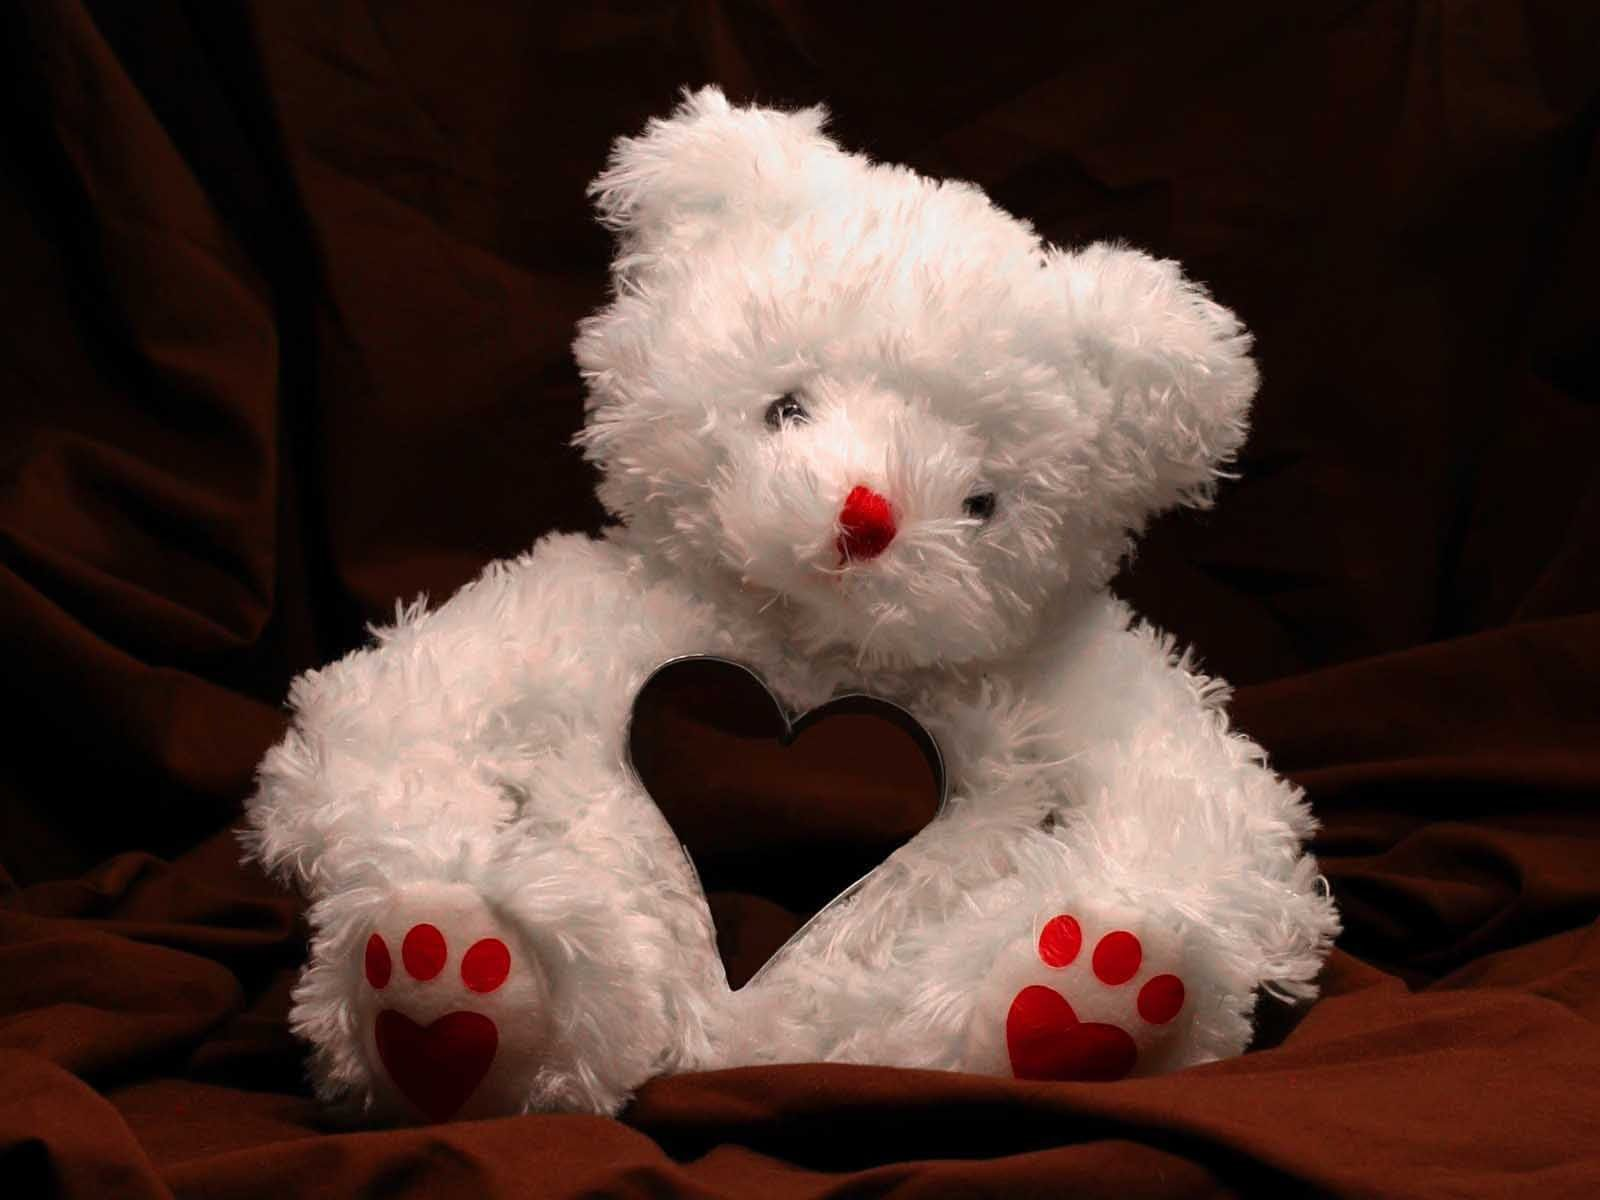 Baby Bear Wallpaper Teddy Bear Wallpaper Teddy Bear Day Teddy Bear Images